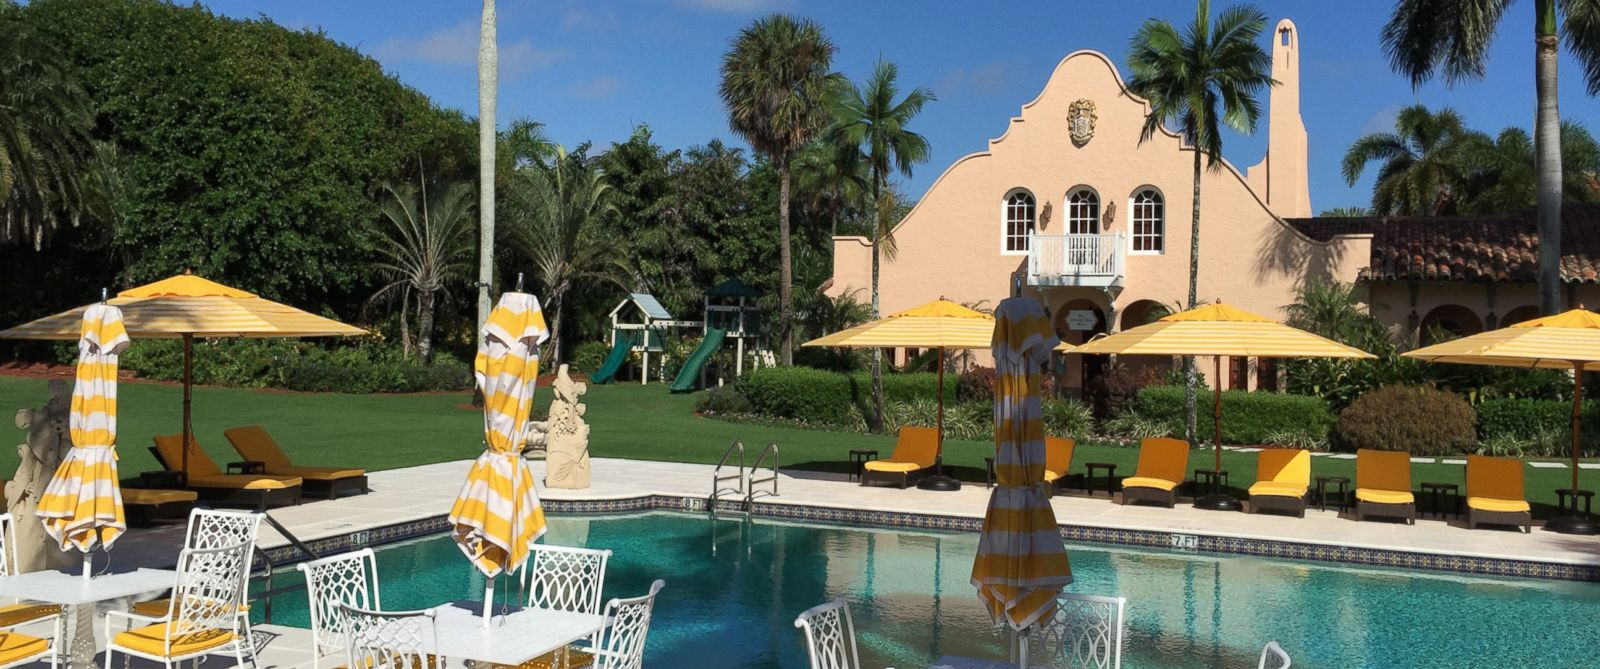 photo the swimming pool that trump built at mar a lago is pictured